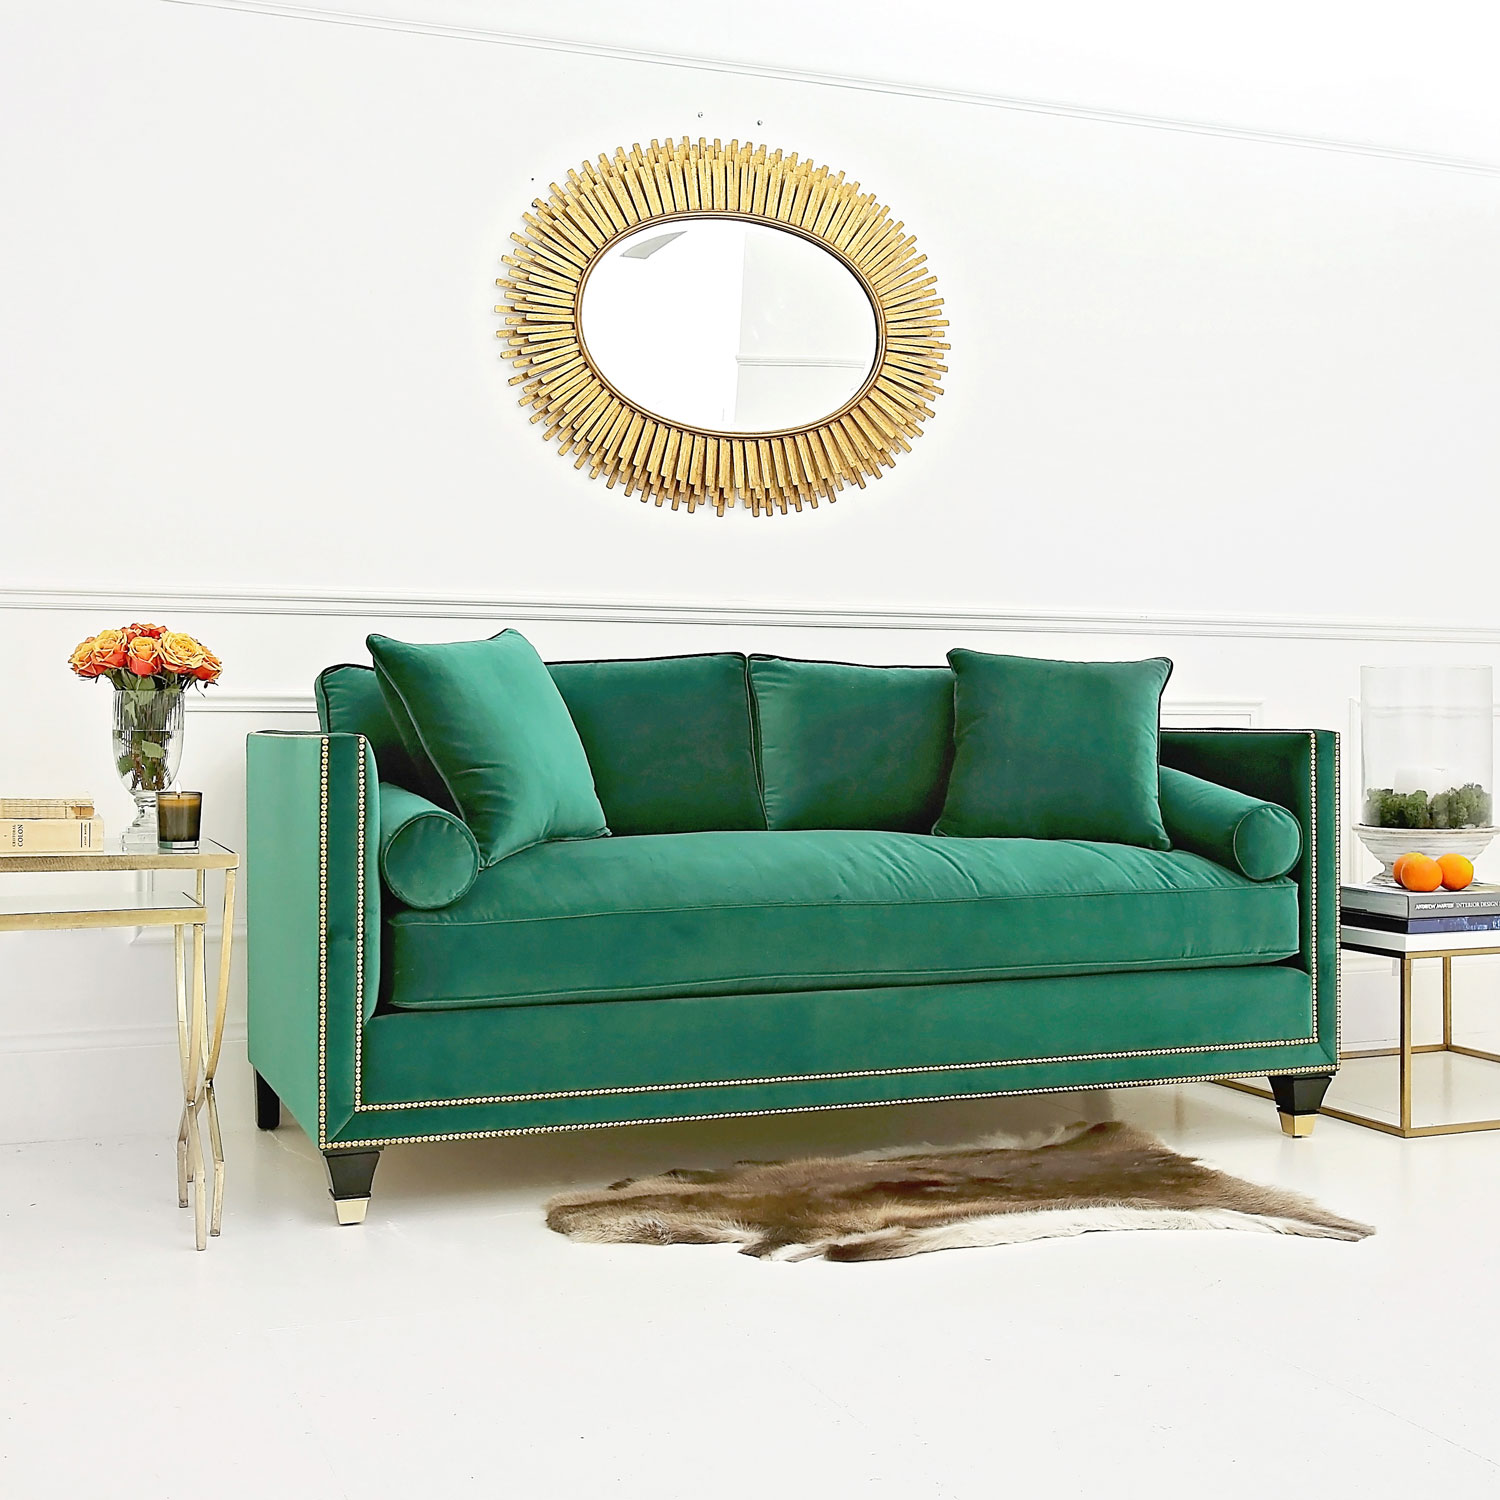 emerald green velvet chair hanging bedroom homes and interiors trend stylish statement sofas avenue15